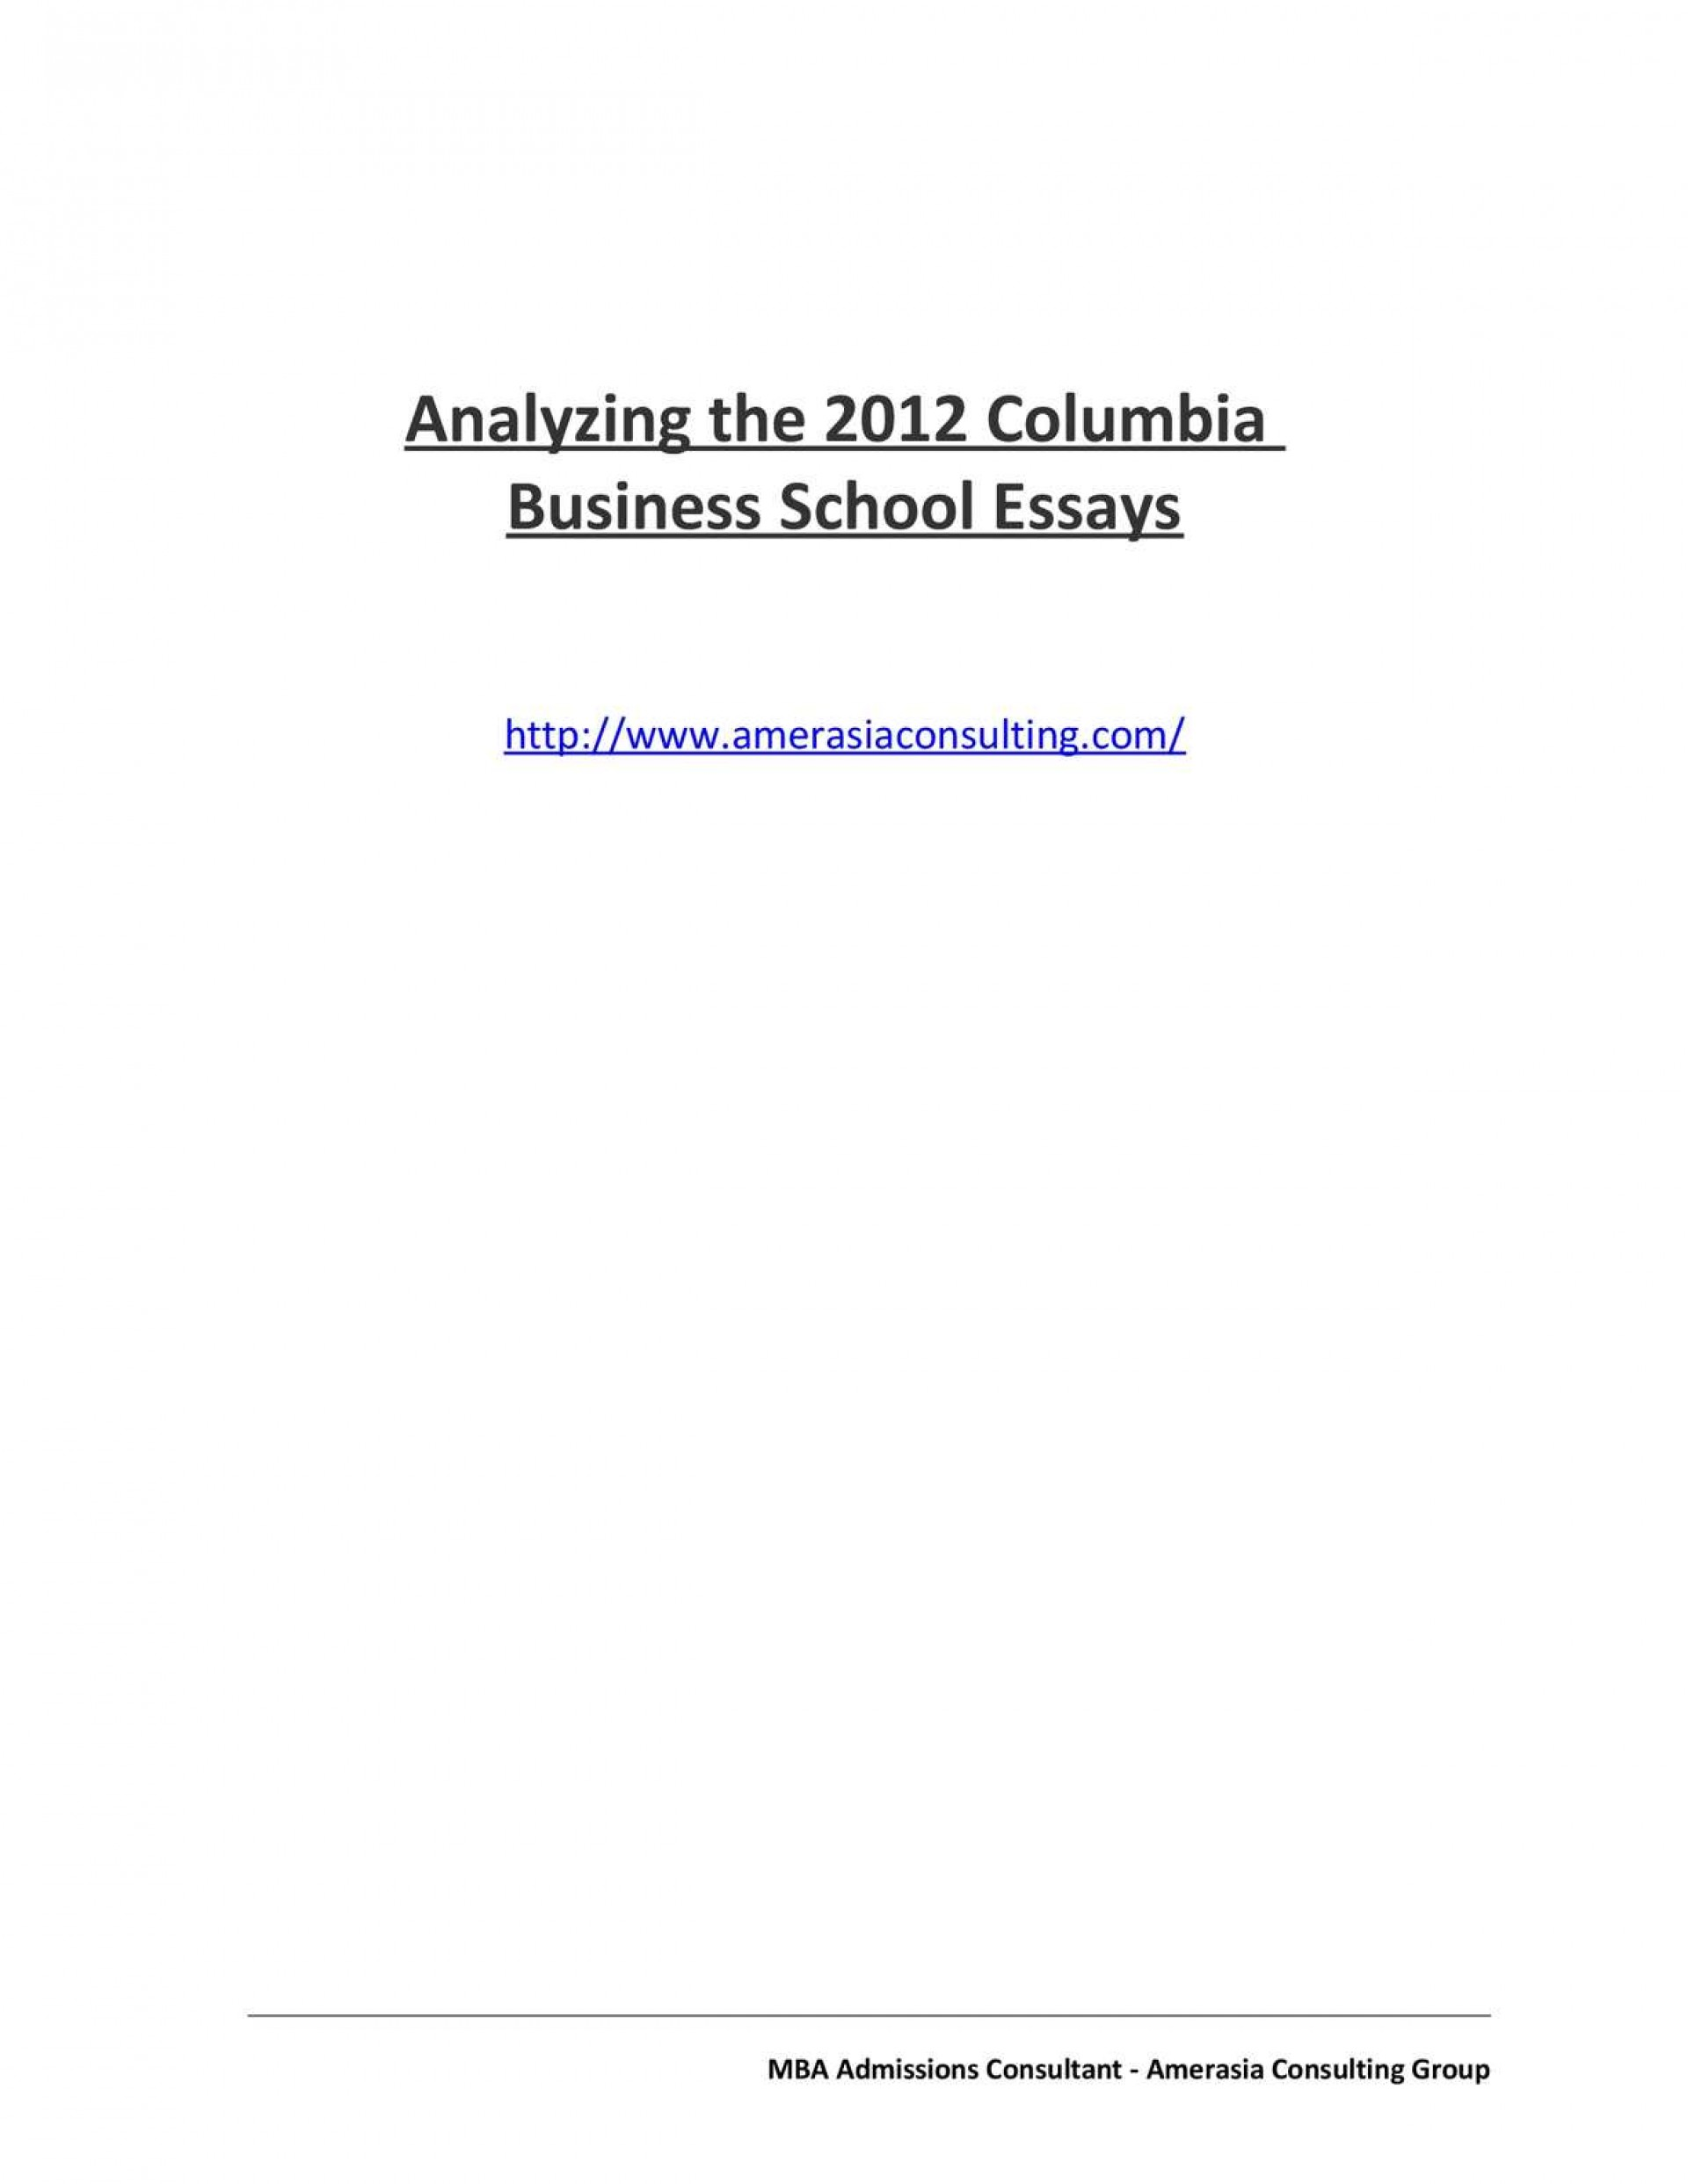 017 Essay Example Columbia Essays Analyzing The Business School Analys Admission Analysis Help Examples Shocking Application That Worked Mba Tips 1920